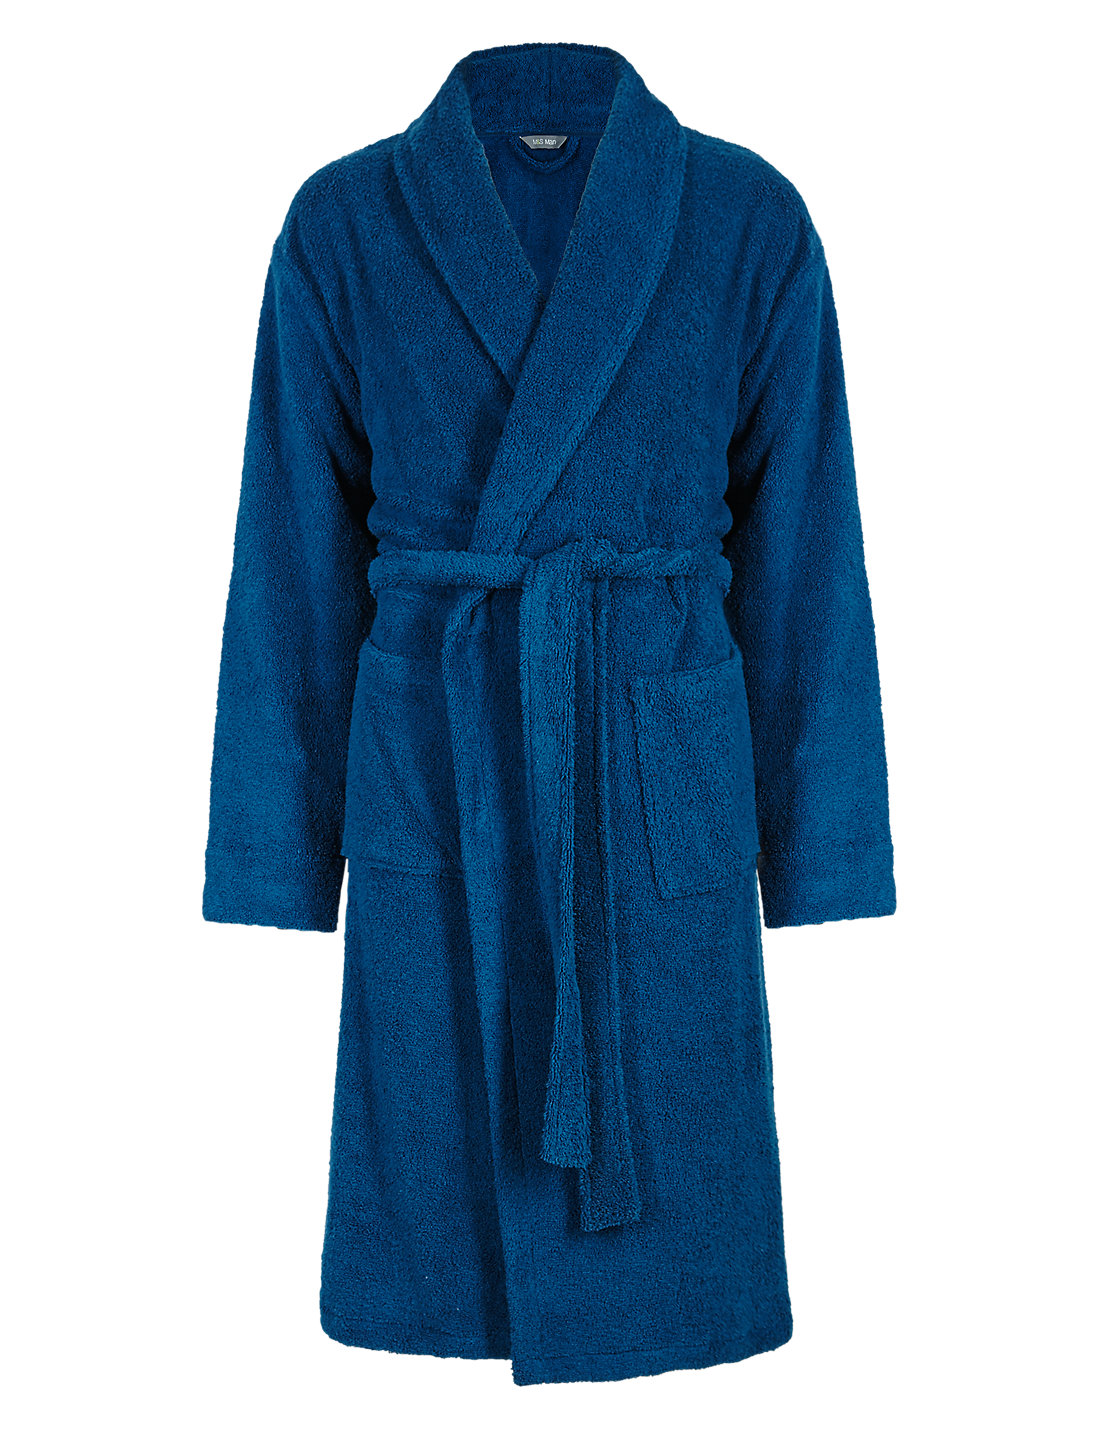 Cotton Rich Towelling Dressing Gown | M